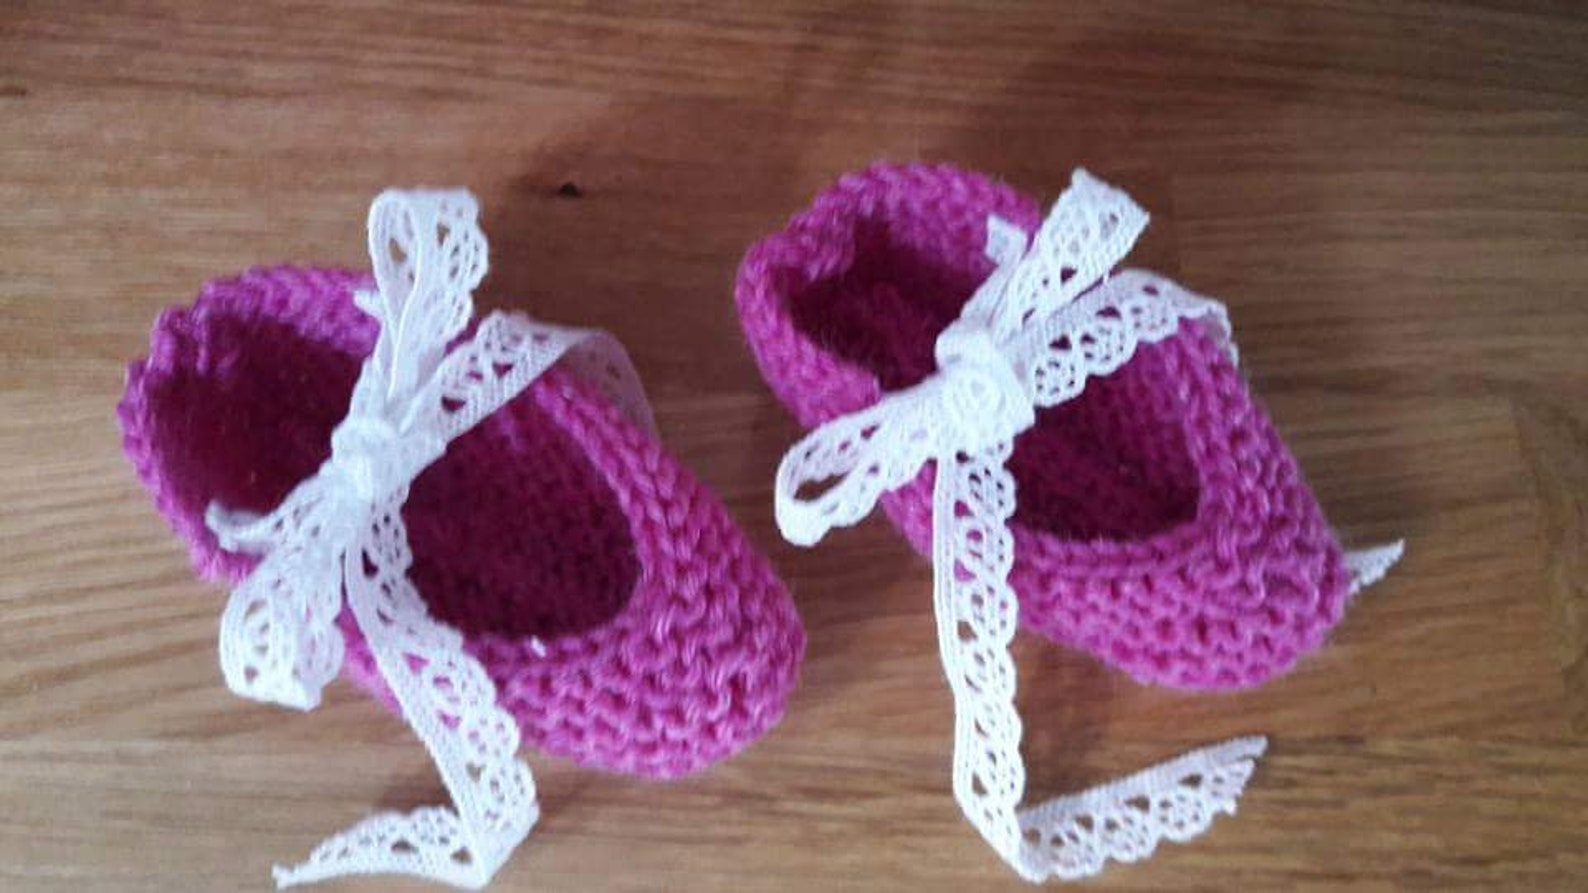 knitted ballet baby booties for baby girls, handmade ballet slippers for 0-6 month old, with white cotton lace, ready to ship